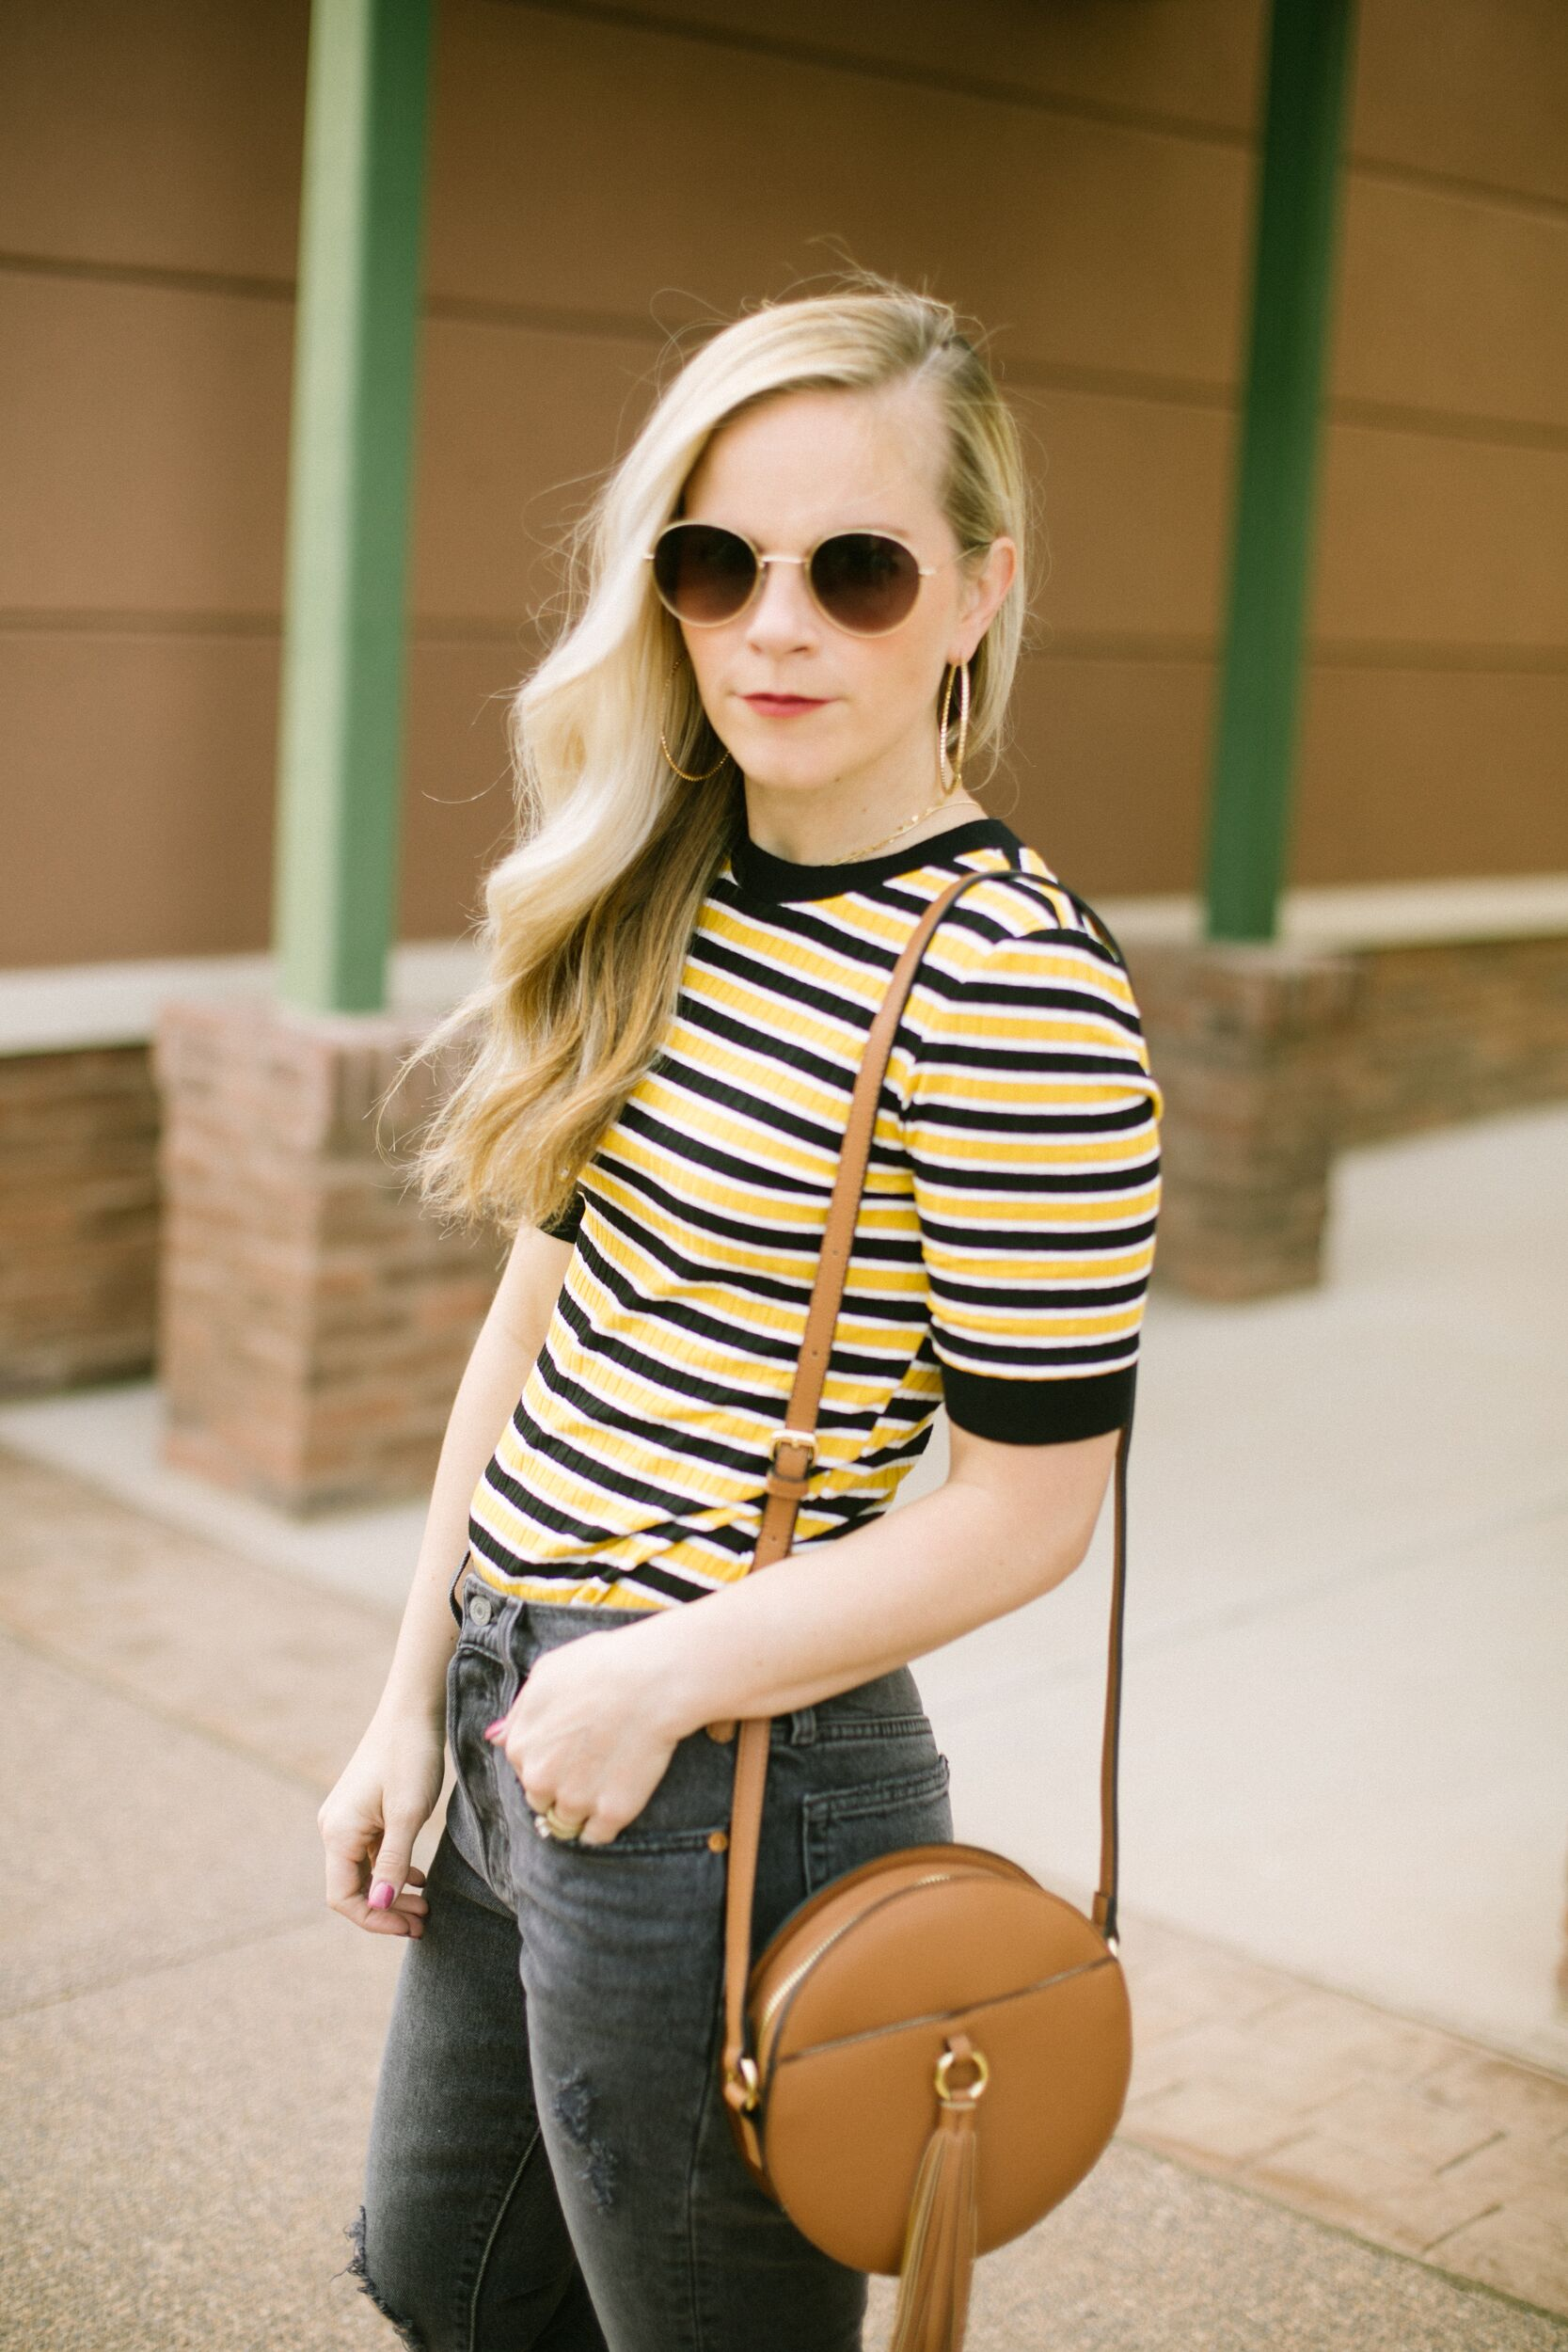 10 Things you May Not Know About Me by popular Las Vegas bloggers Life of a Sister